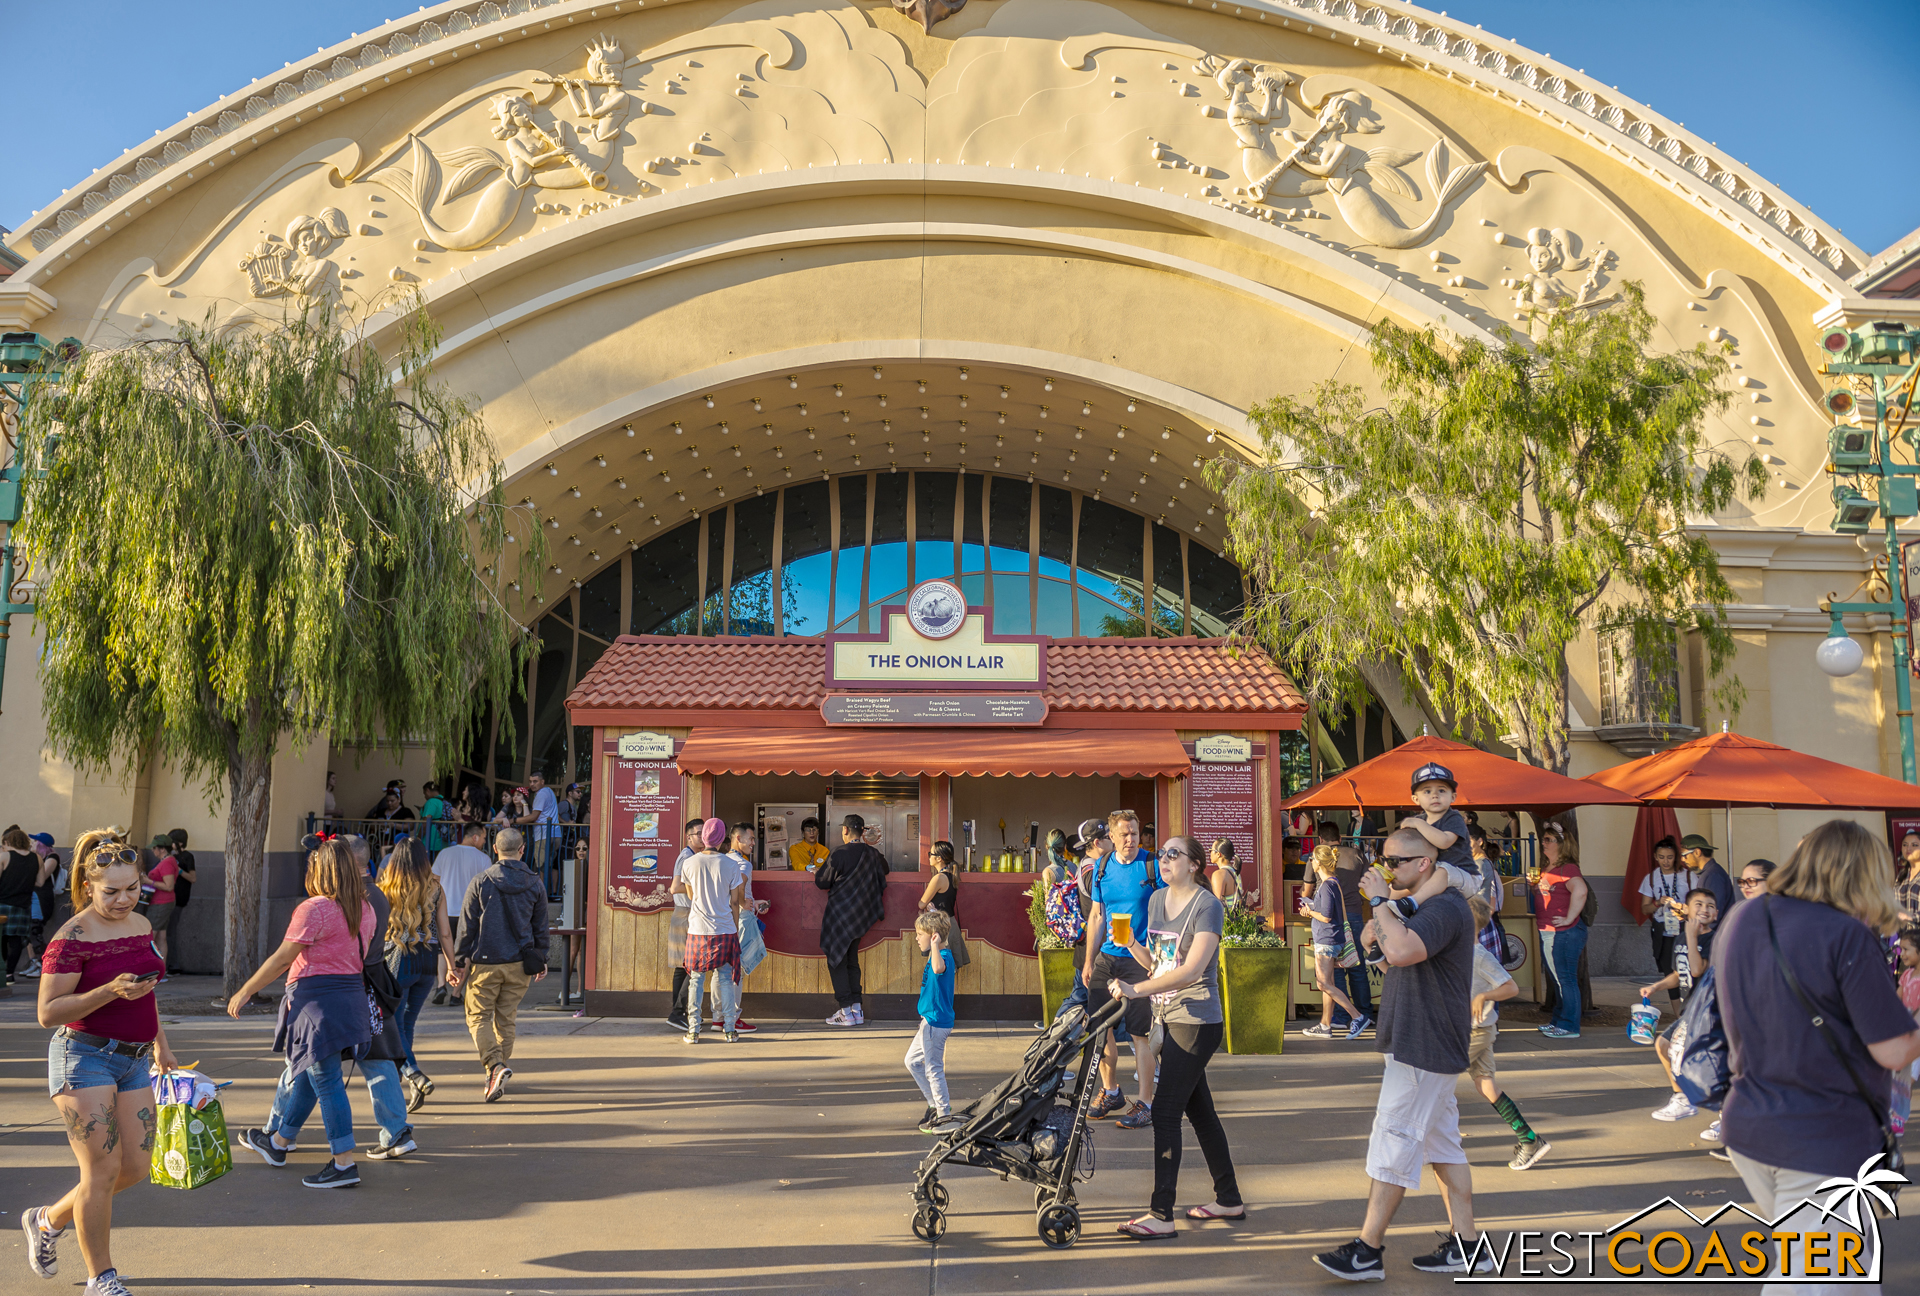 It certainly changes the complexion of this part of California Adventure!